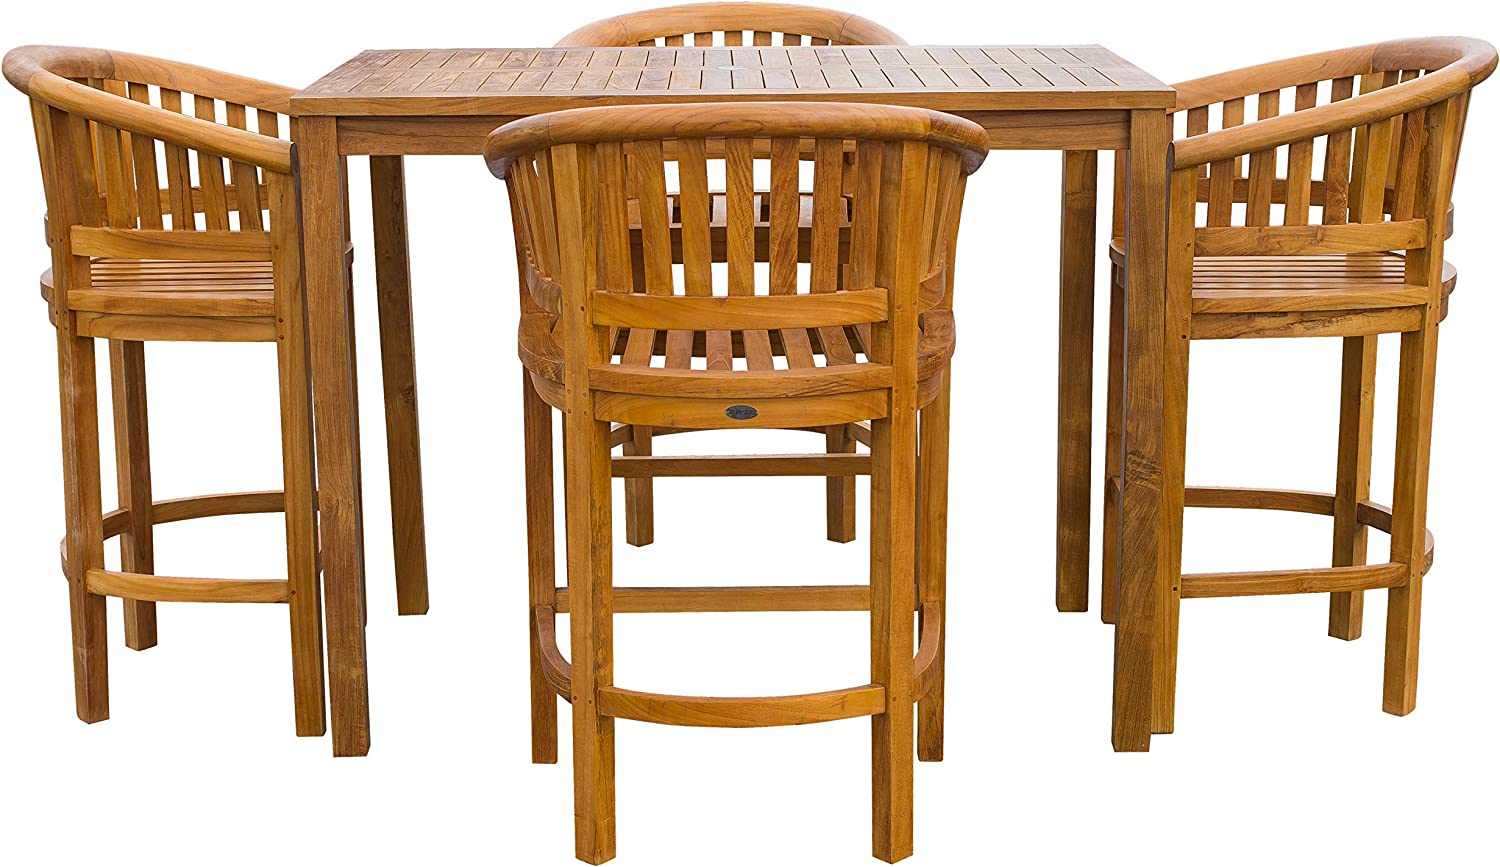 5 Piece Teak Wood Peanut Patio Bistro Bar Set With 4 Bar Chairs And 55 Bar Table Made From Solid A Grade Teak Wood Garden Outdoor